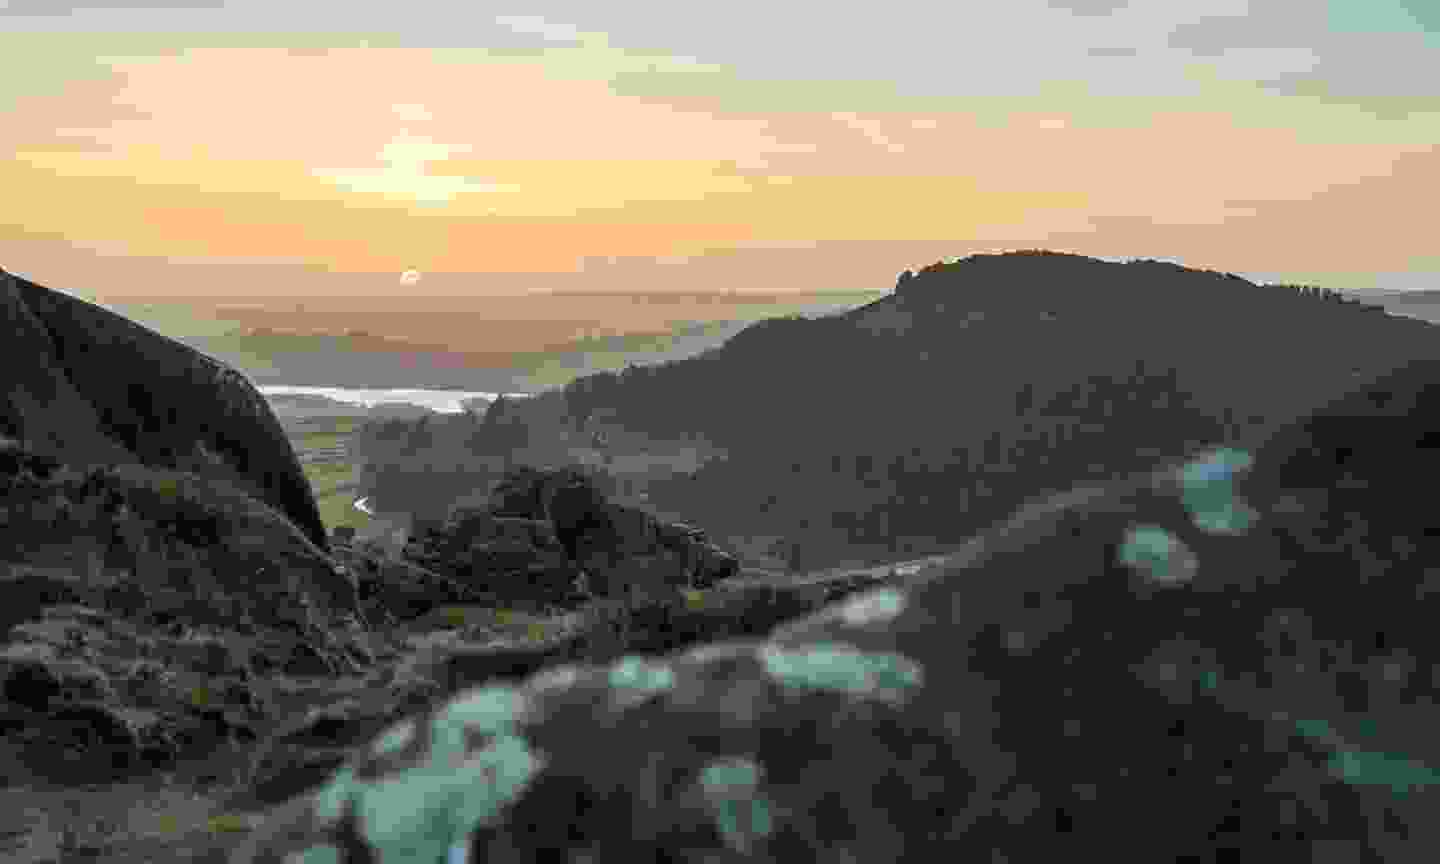 The view over the Black Rocks at sunset, Cromford (Shutterstock)